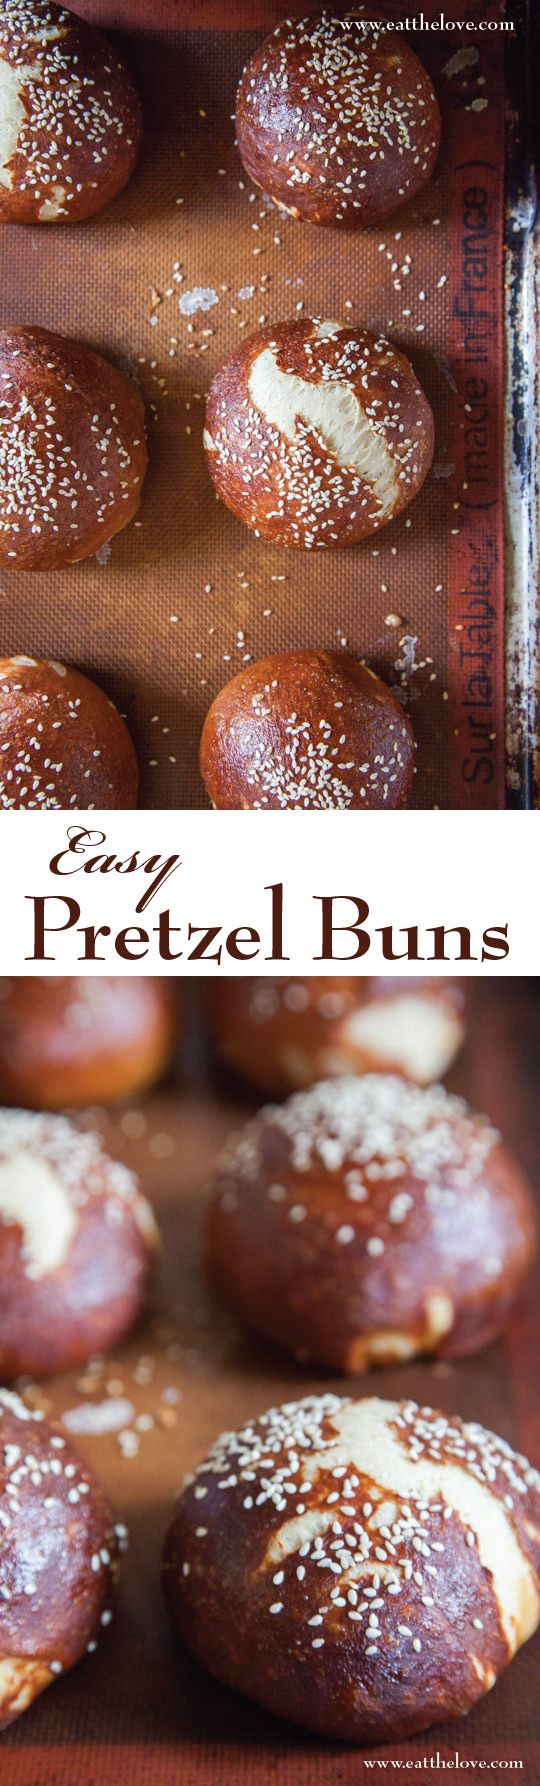 "These easy-to-make pretzel buns use baking soda to ""pretzel-fy"" the dough. They're my favorite burger buns!"